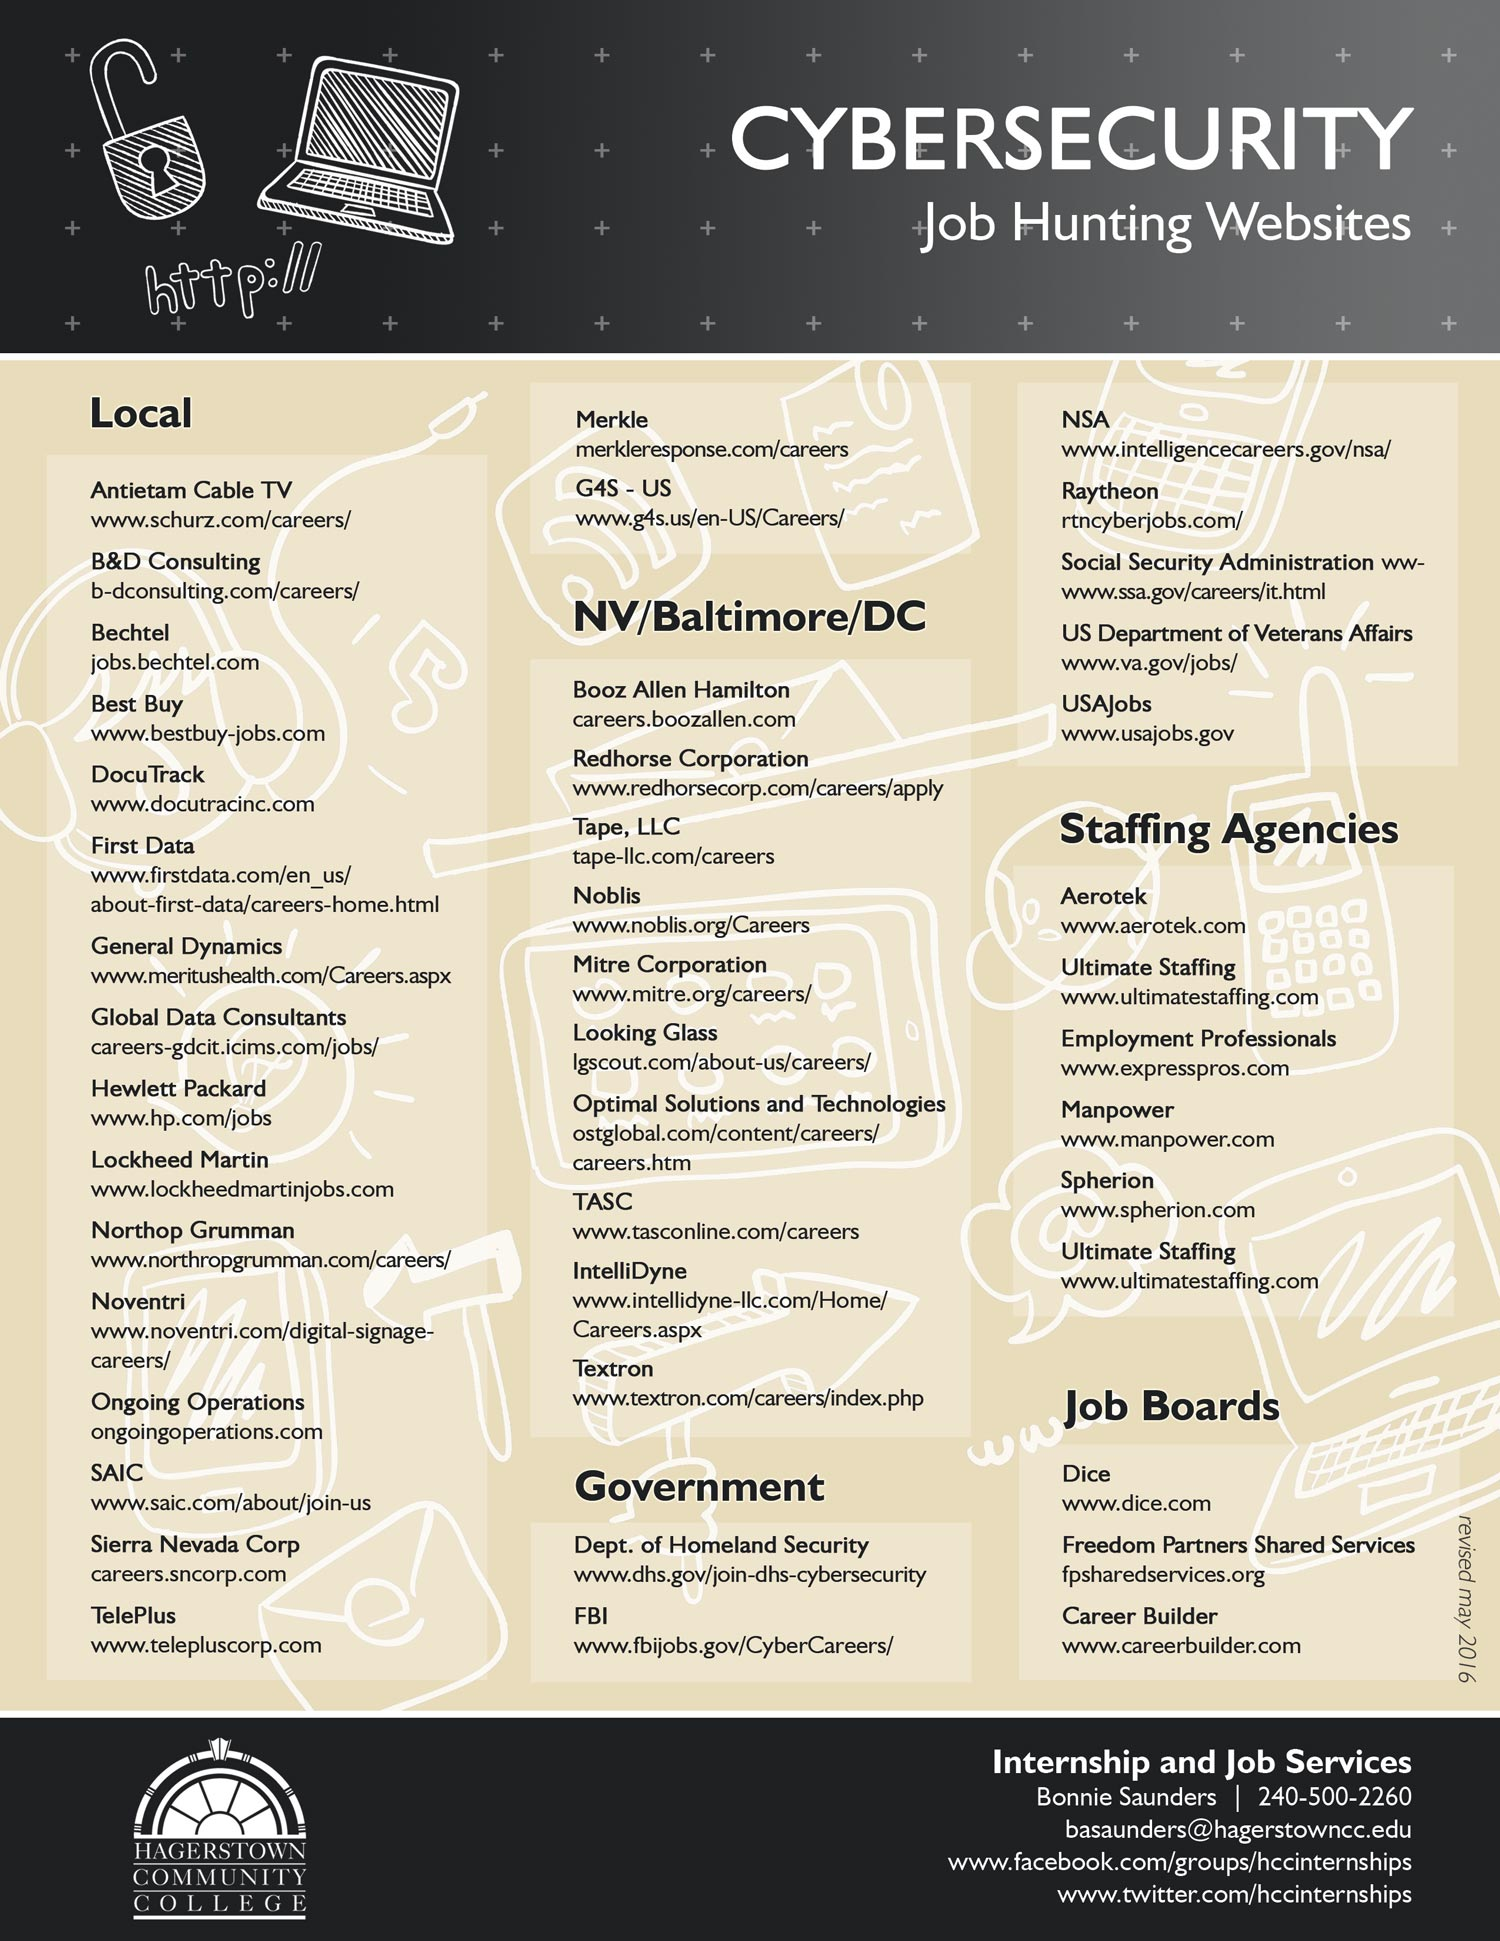 creative mind central hcc job hunting websites flyers cybersecurity